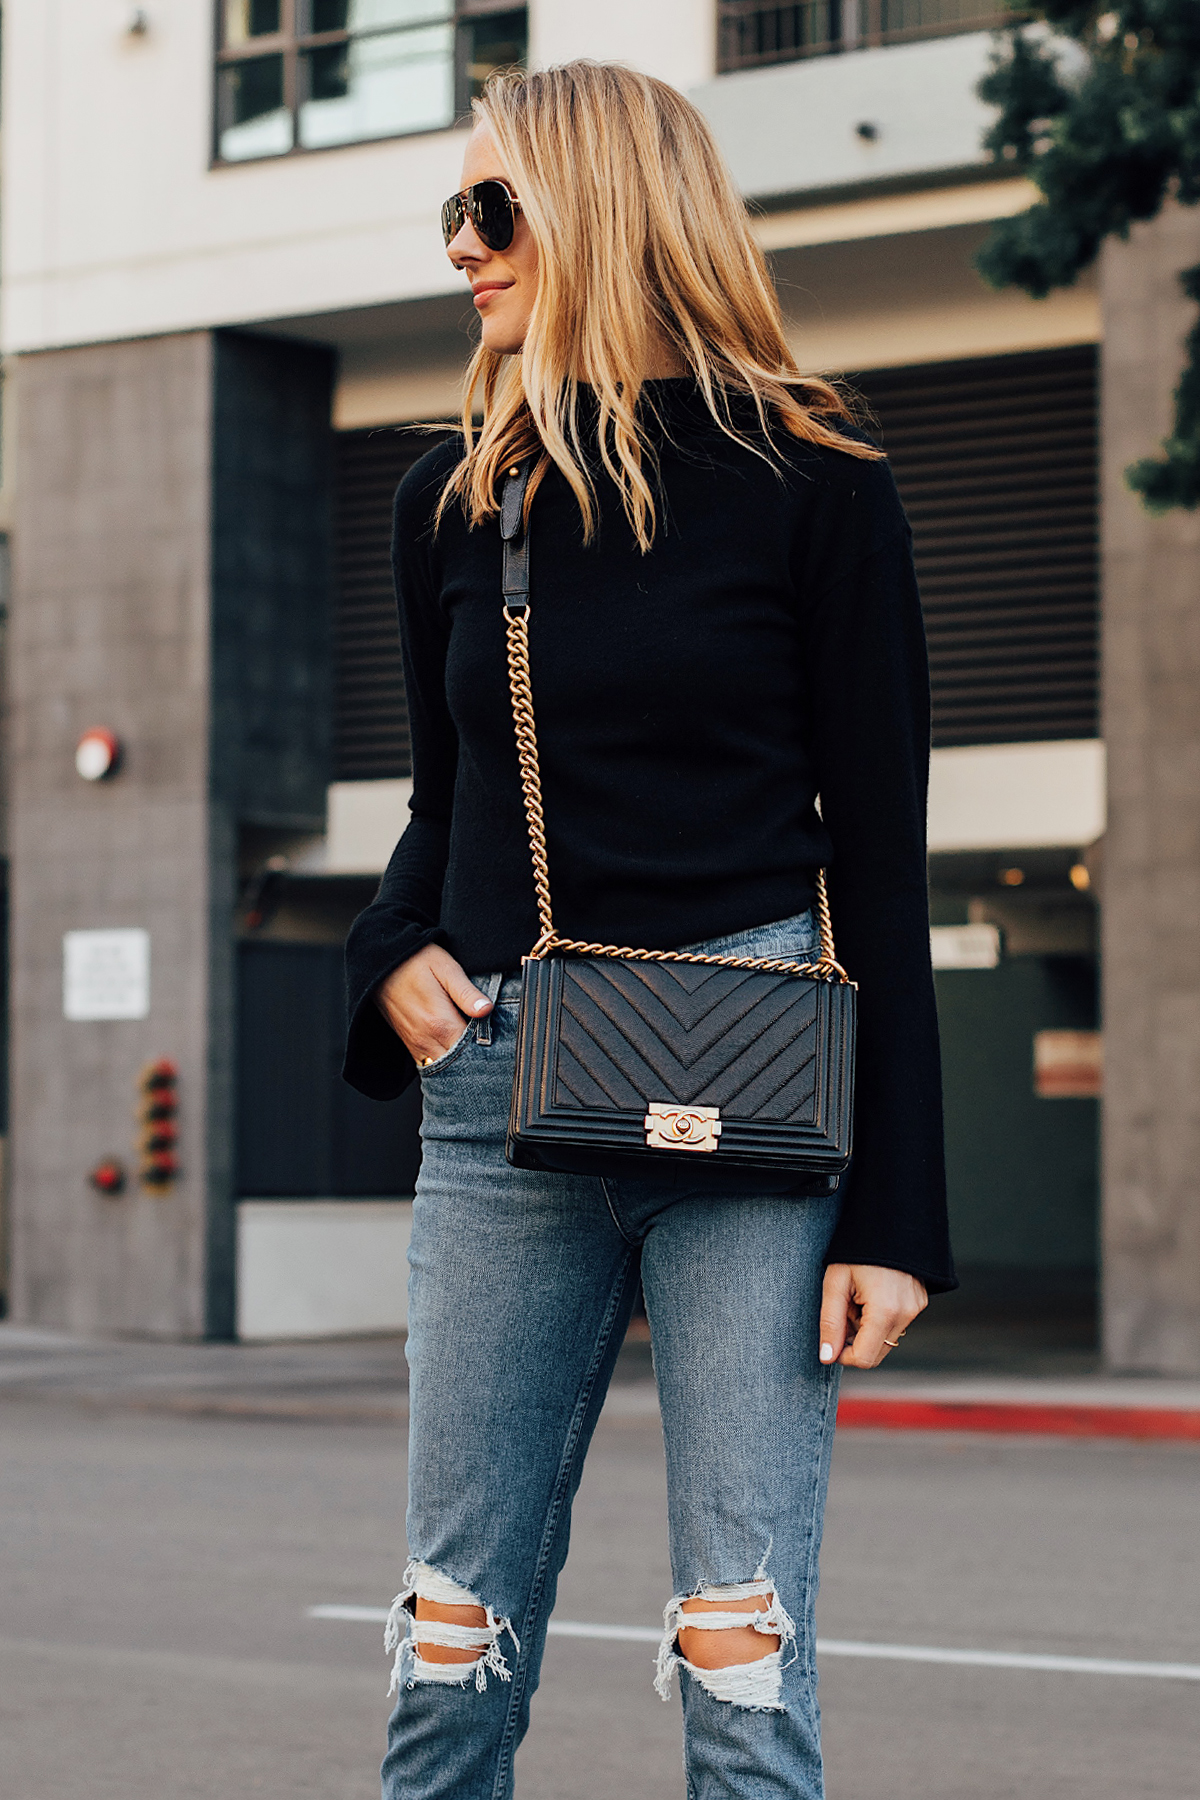 Blonde Woman Wearing Theory Black Sweater Paige Ripped Skinny Jeans Chanel Black Handbag Fashion Jackson San Diego Fashion Blogger Street Style